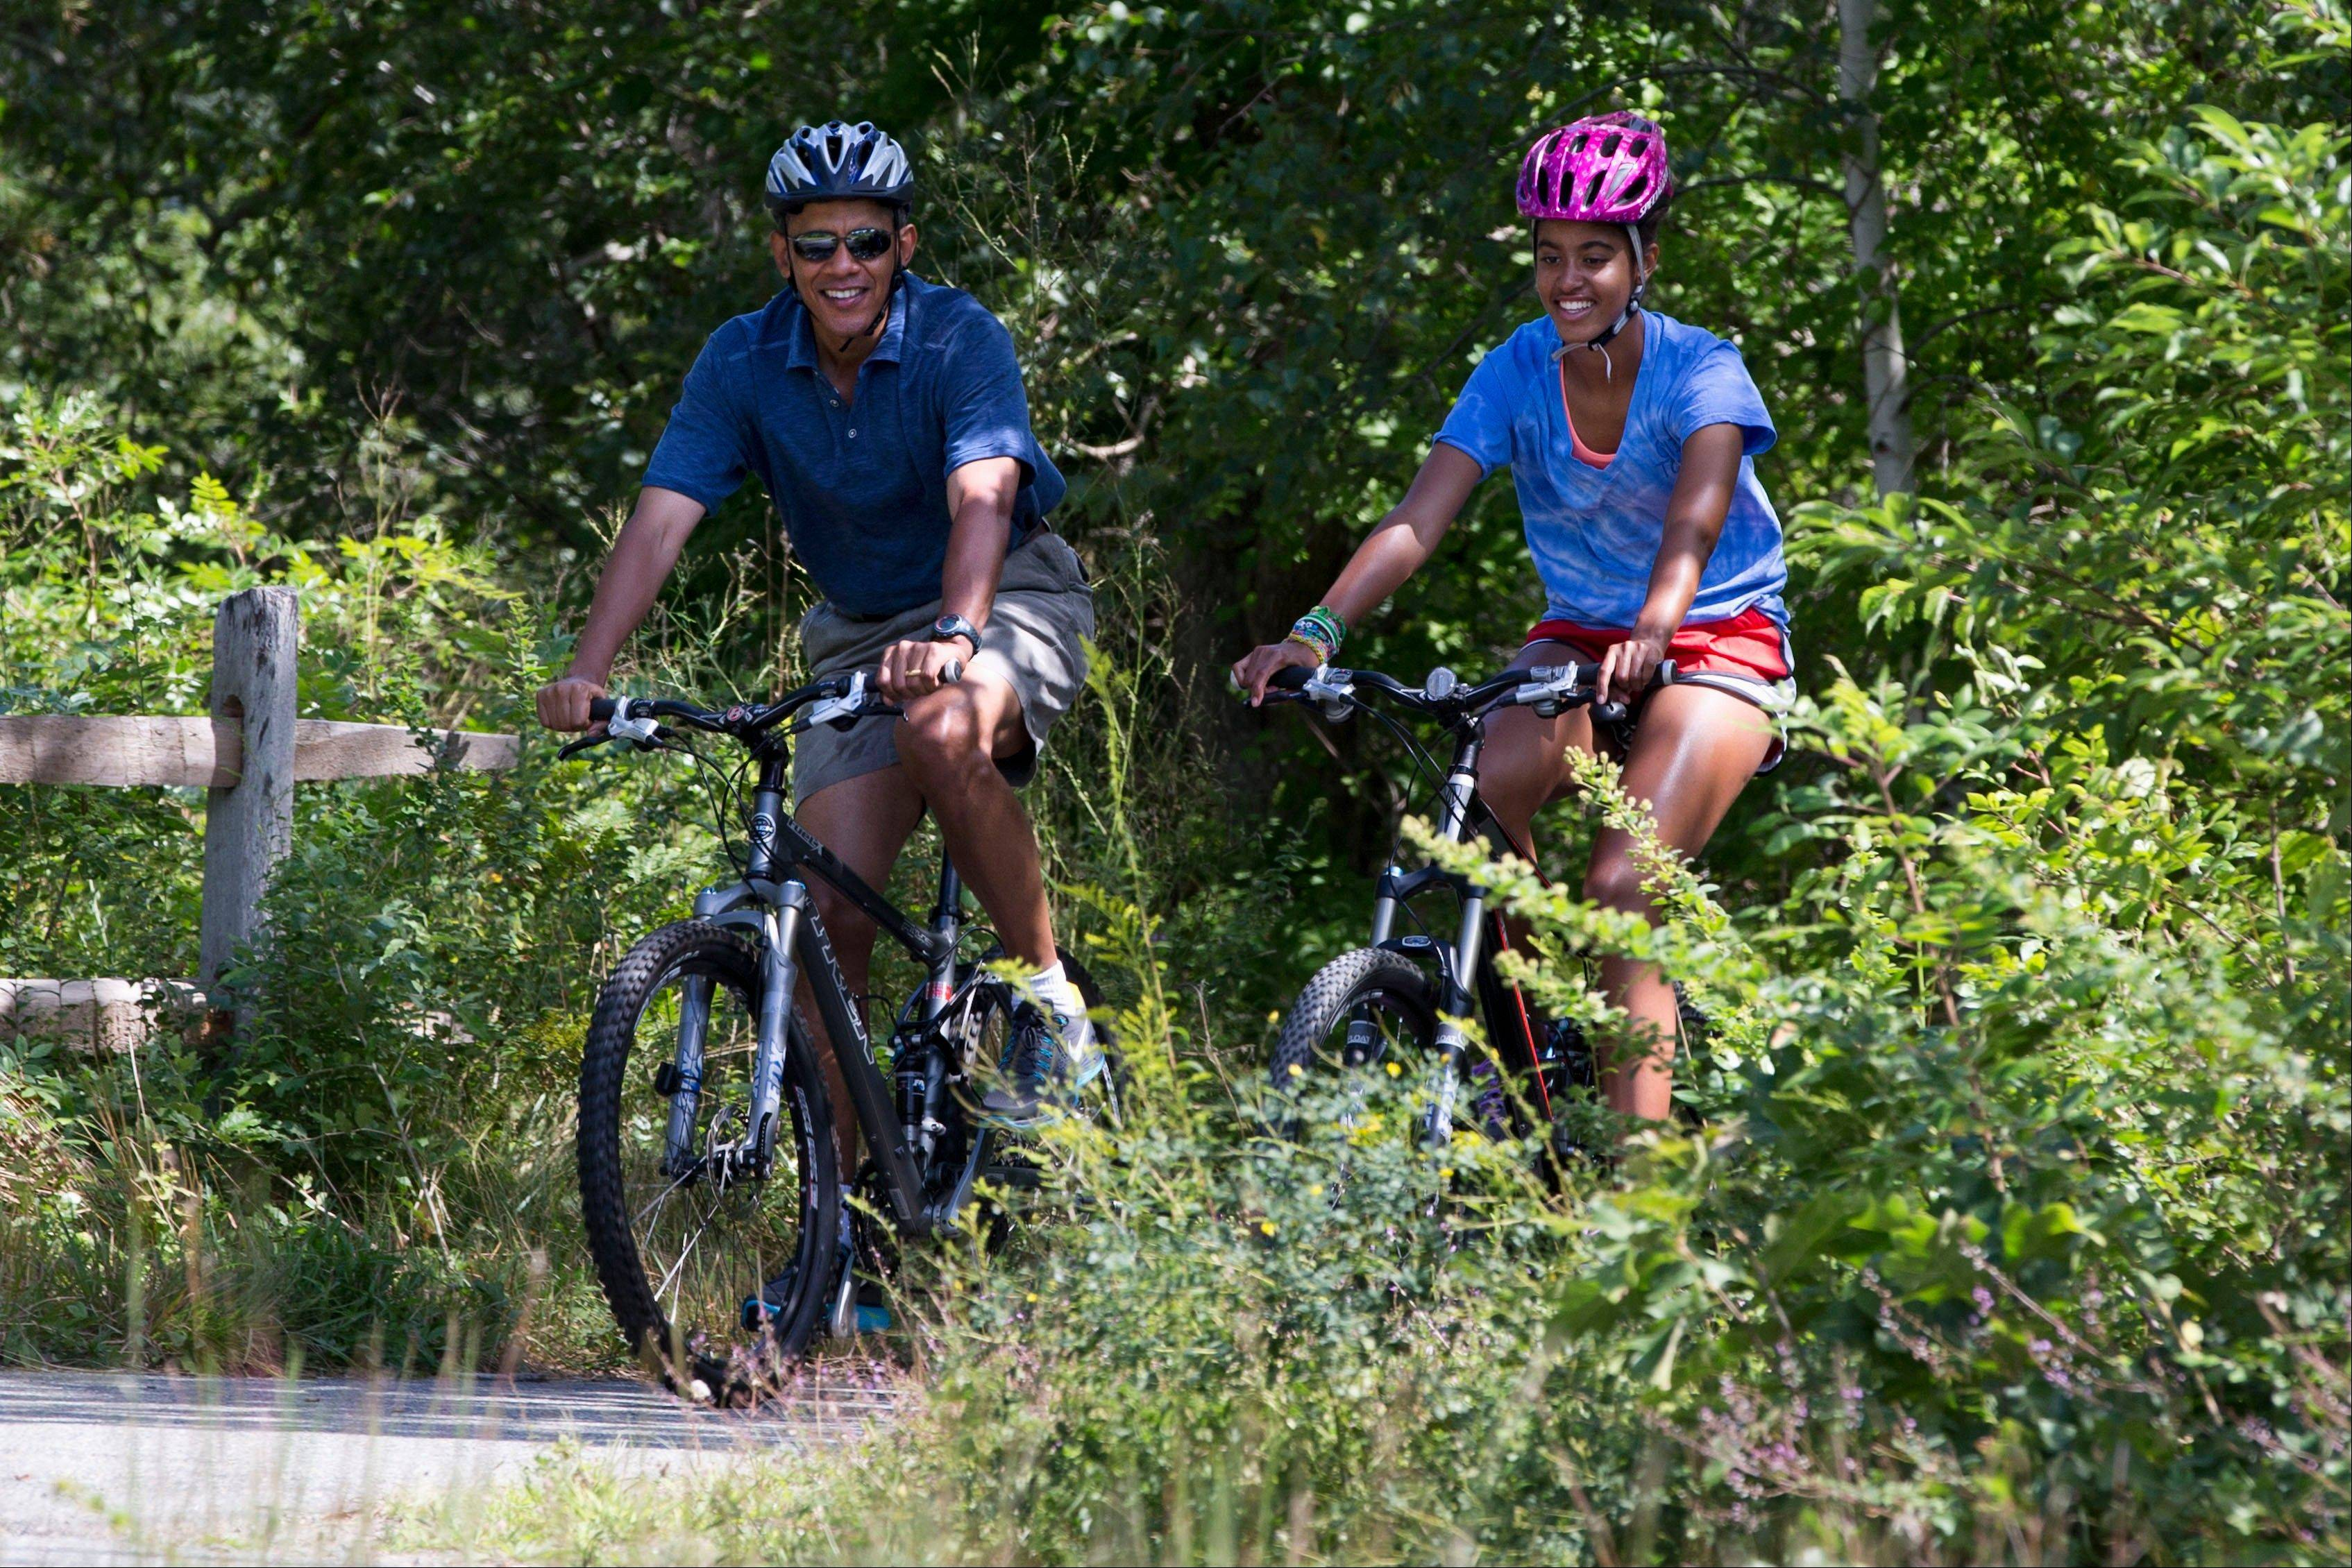 President Barack Obama, with daughter Malia, rides bicycles in Manuel F. Correllus State Forest, after first lady Michelle Obama, with daughter Sasha, not pictured, passed by first, during their family vacation on the island of Martha's Vineyard.